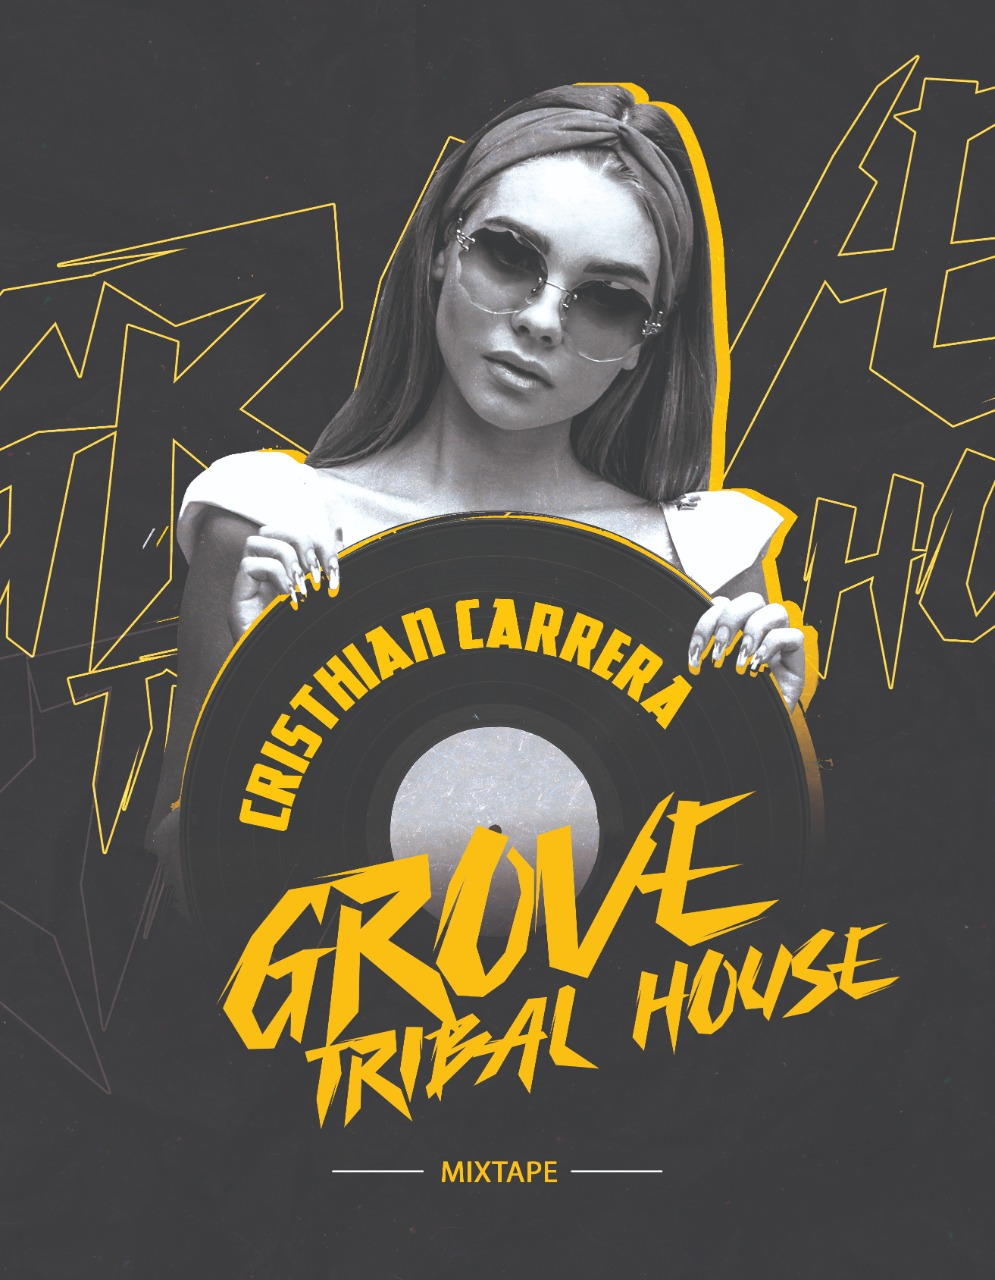 Cristhian Carrera - Grove Tribal House Mixtape